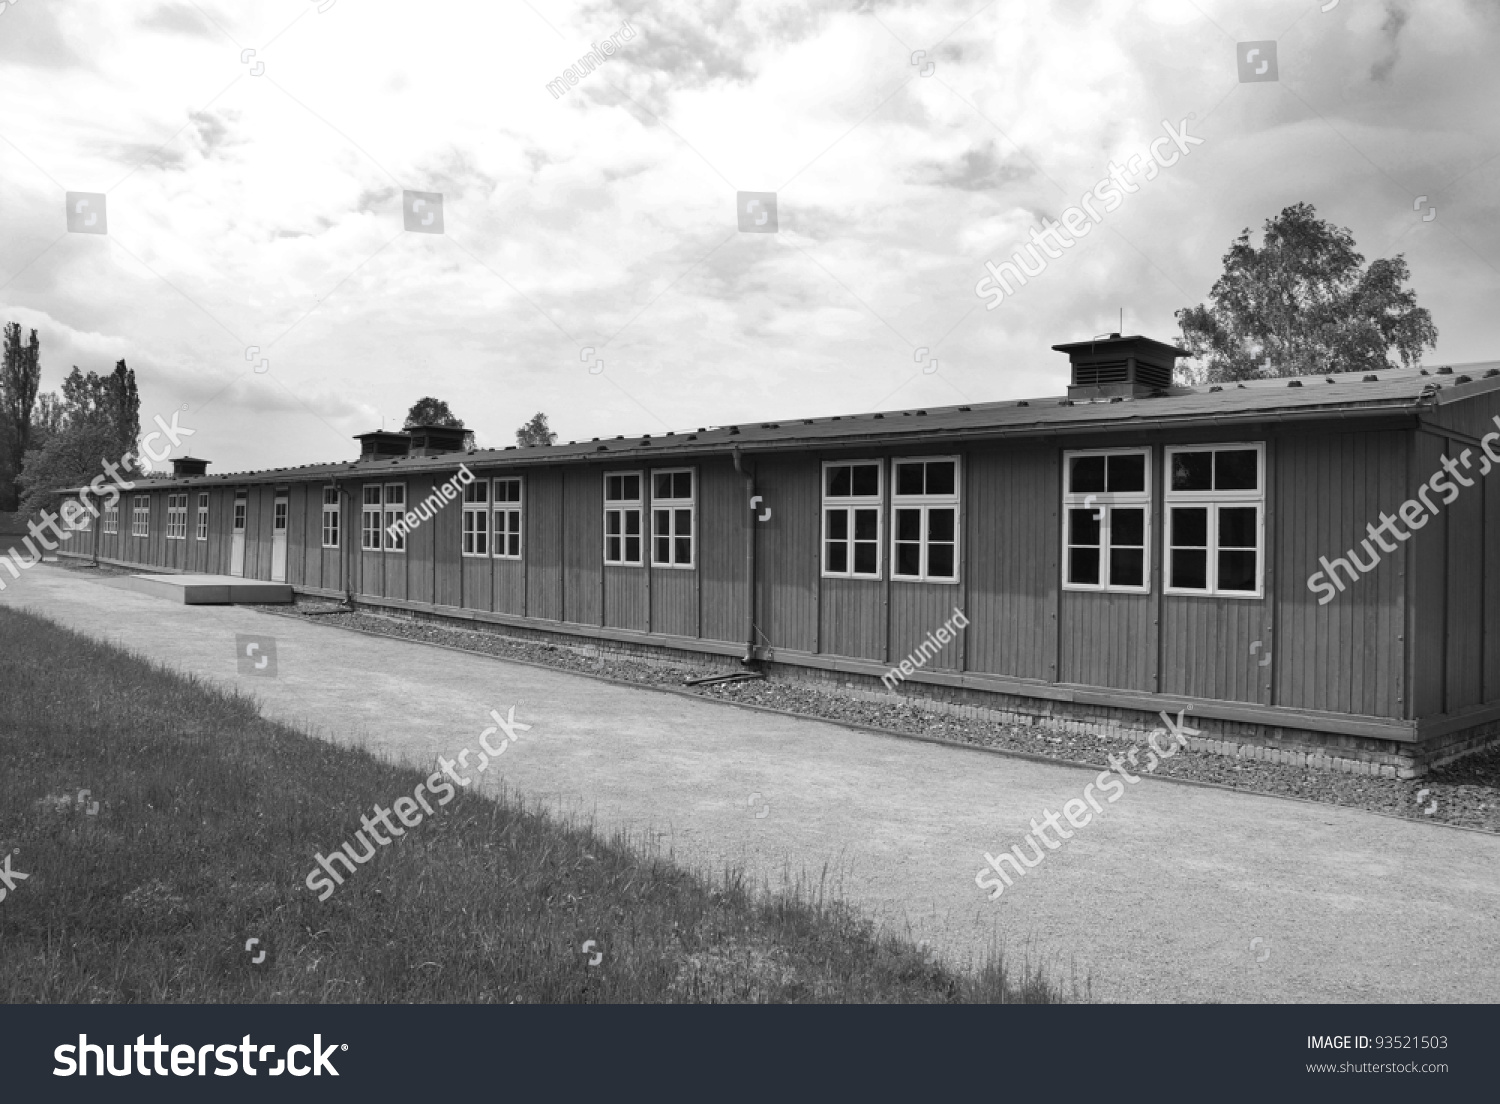 Sachsenhausenoranienburg Nazi Concentration Camp Germany Jewish - Concentration camp museums in usa